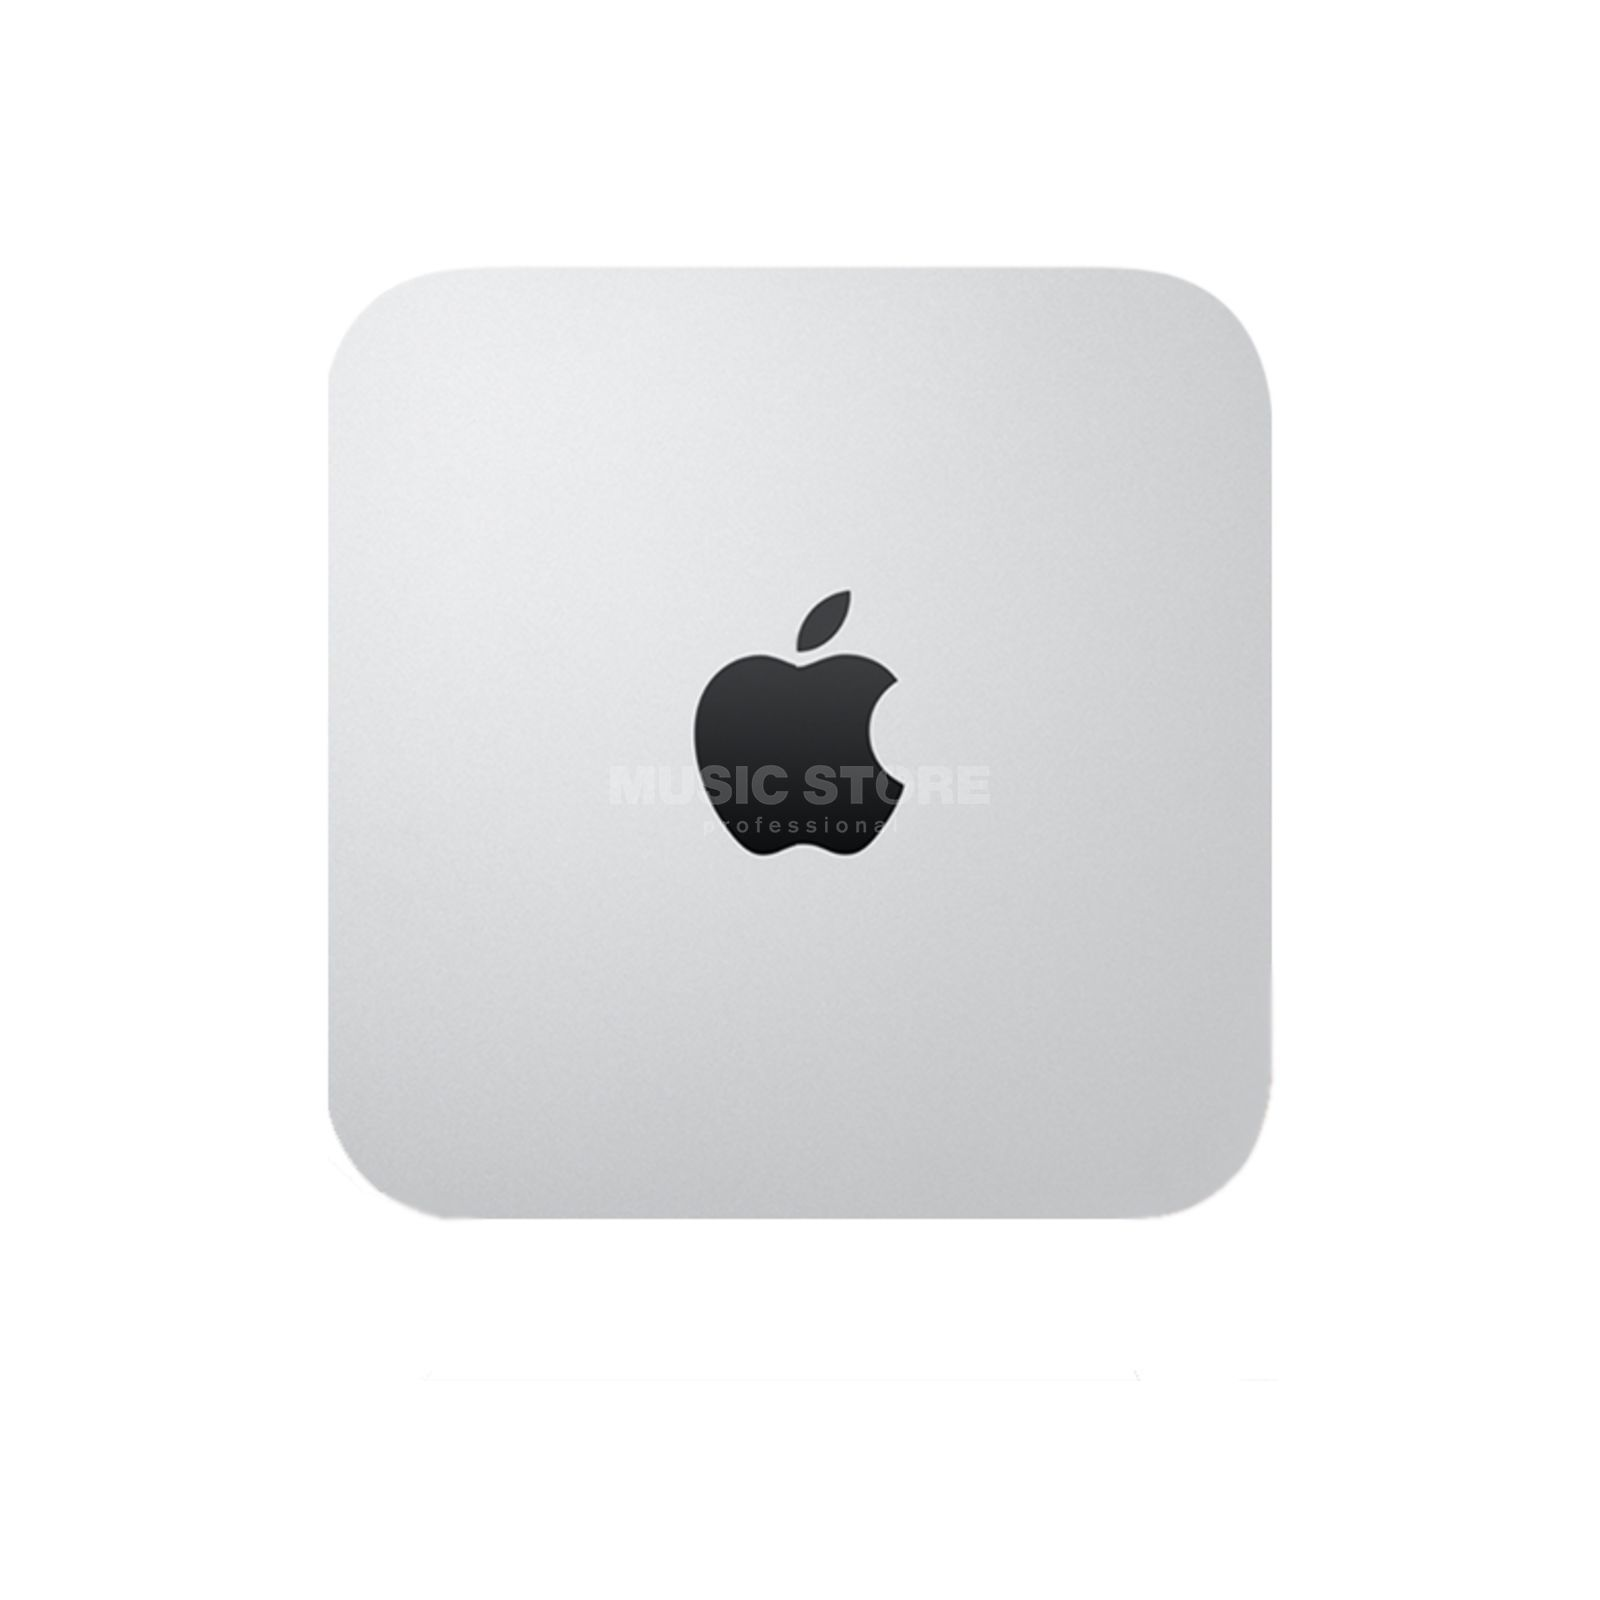 Apple Mac mini 2,6GHz Dual-Core i5 8GB RAM, 1TB, Intel Iris Produktbild